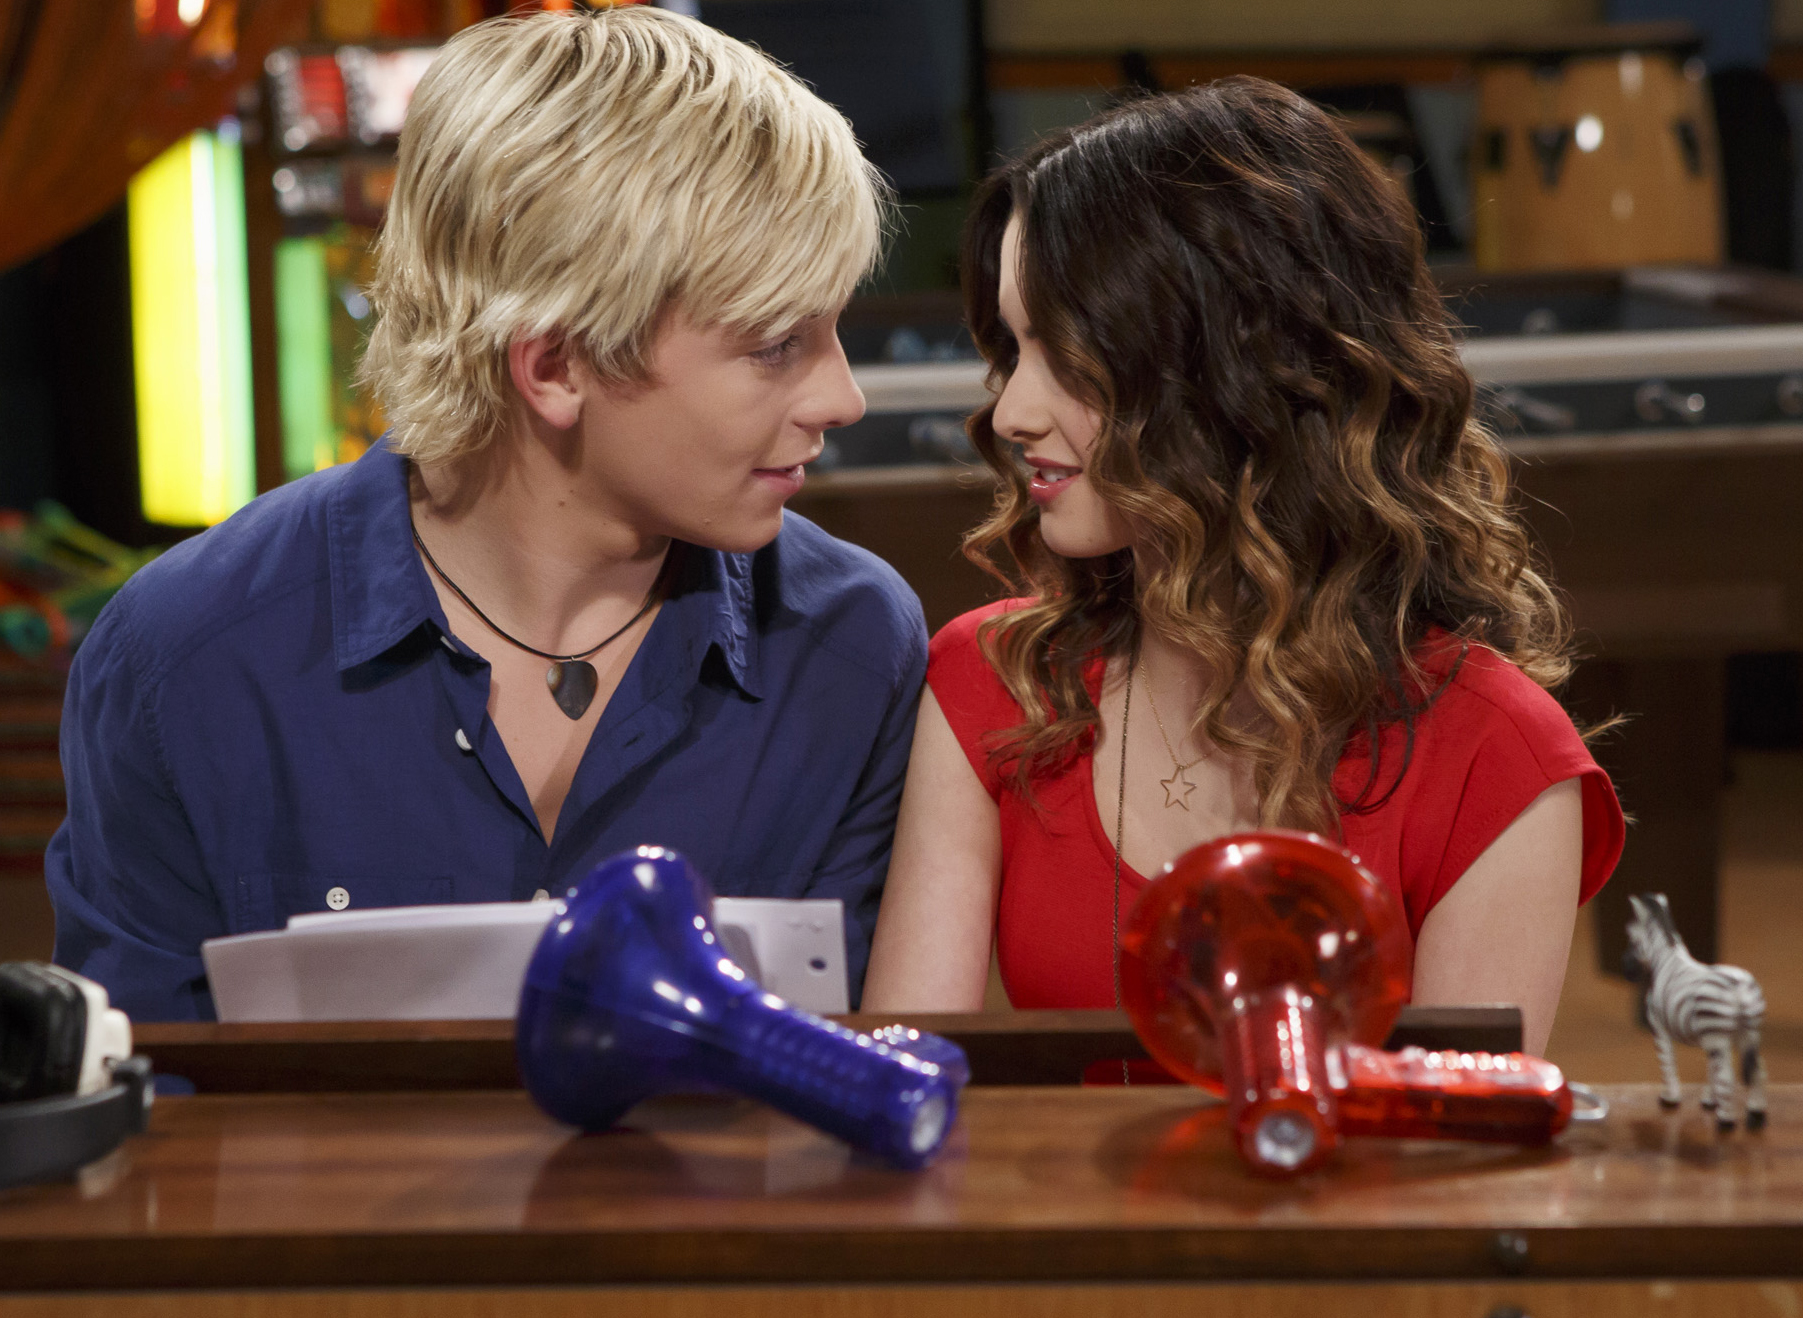 VERONICA: Austin and ally dating for real